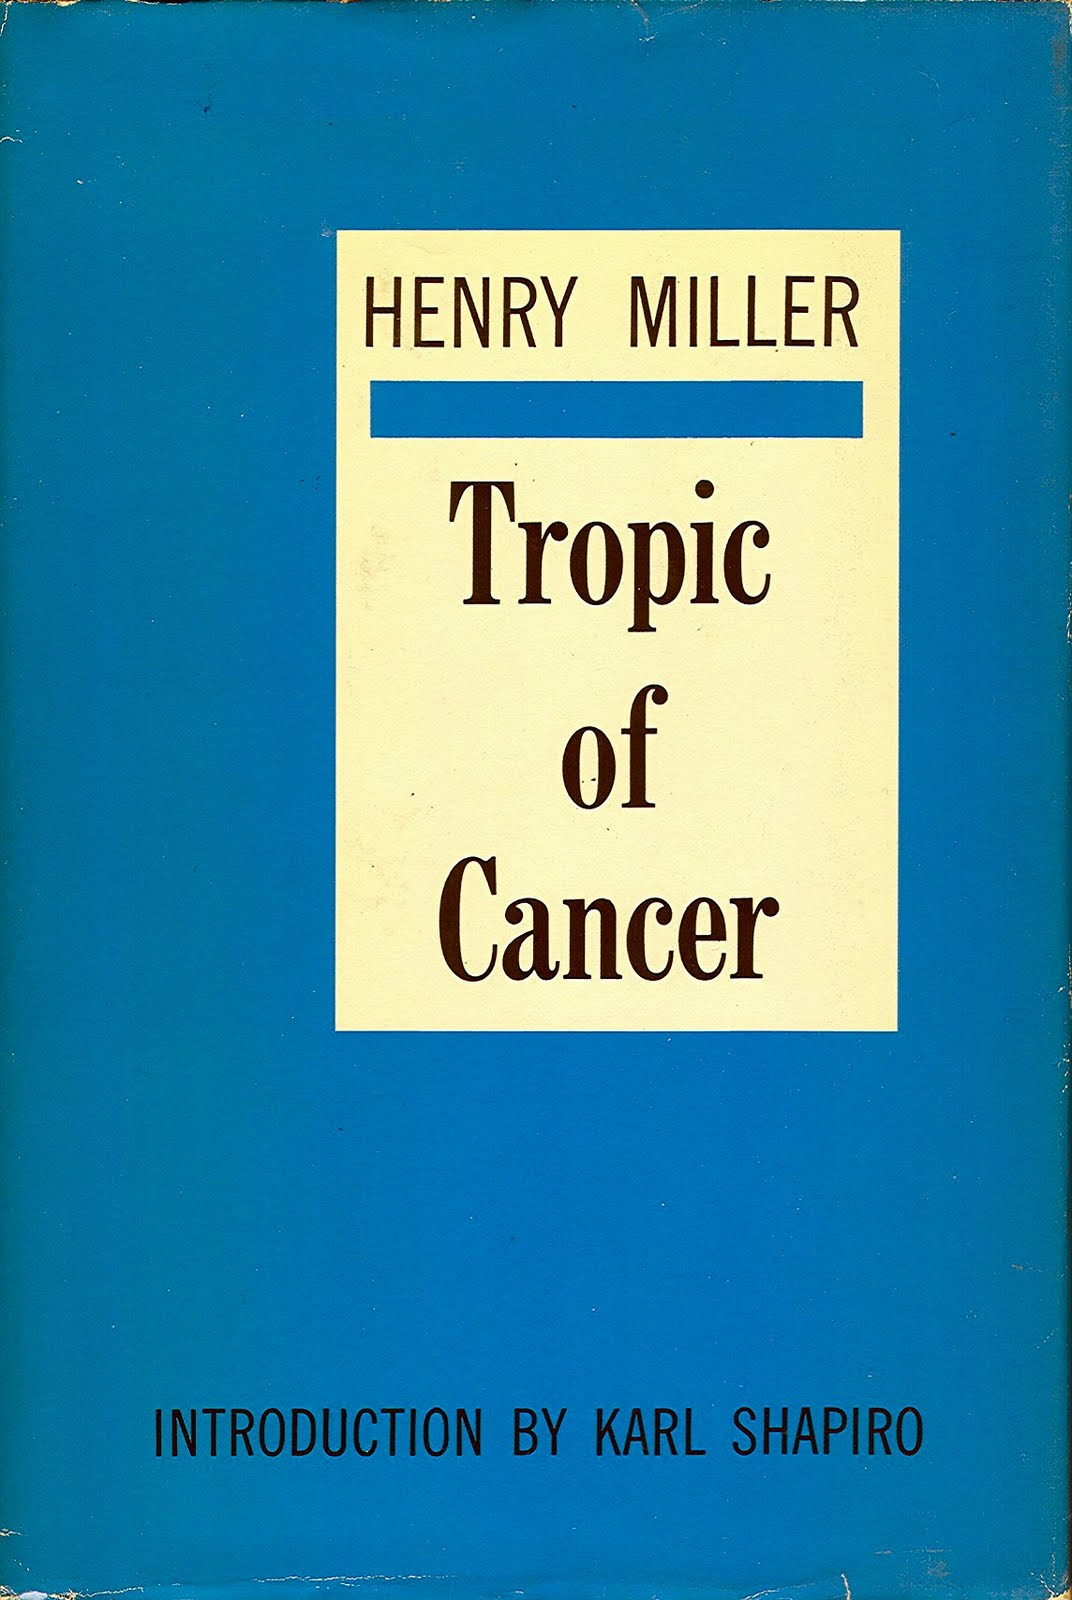 Tropic of Cancer by Henry Miller book jacket